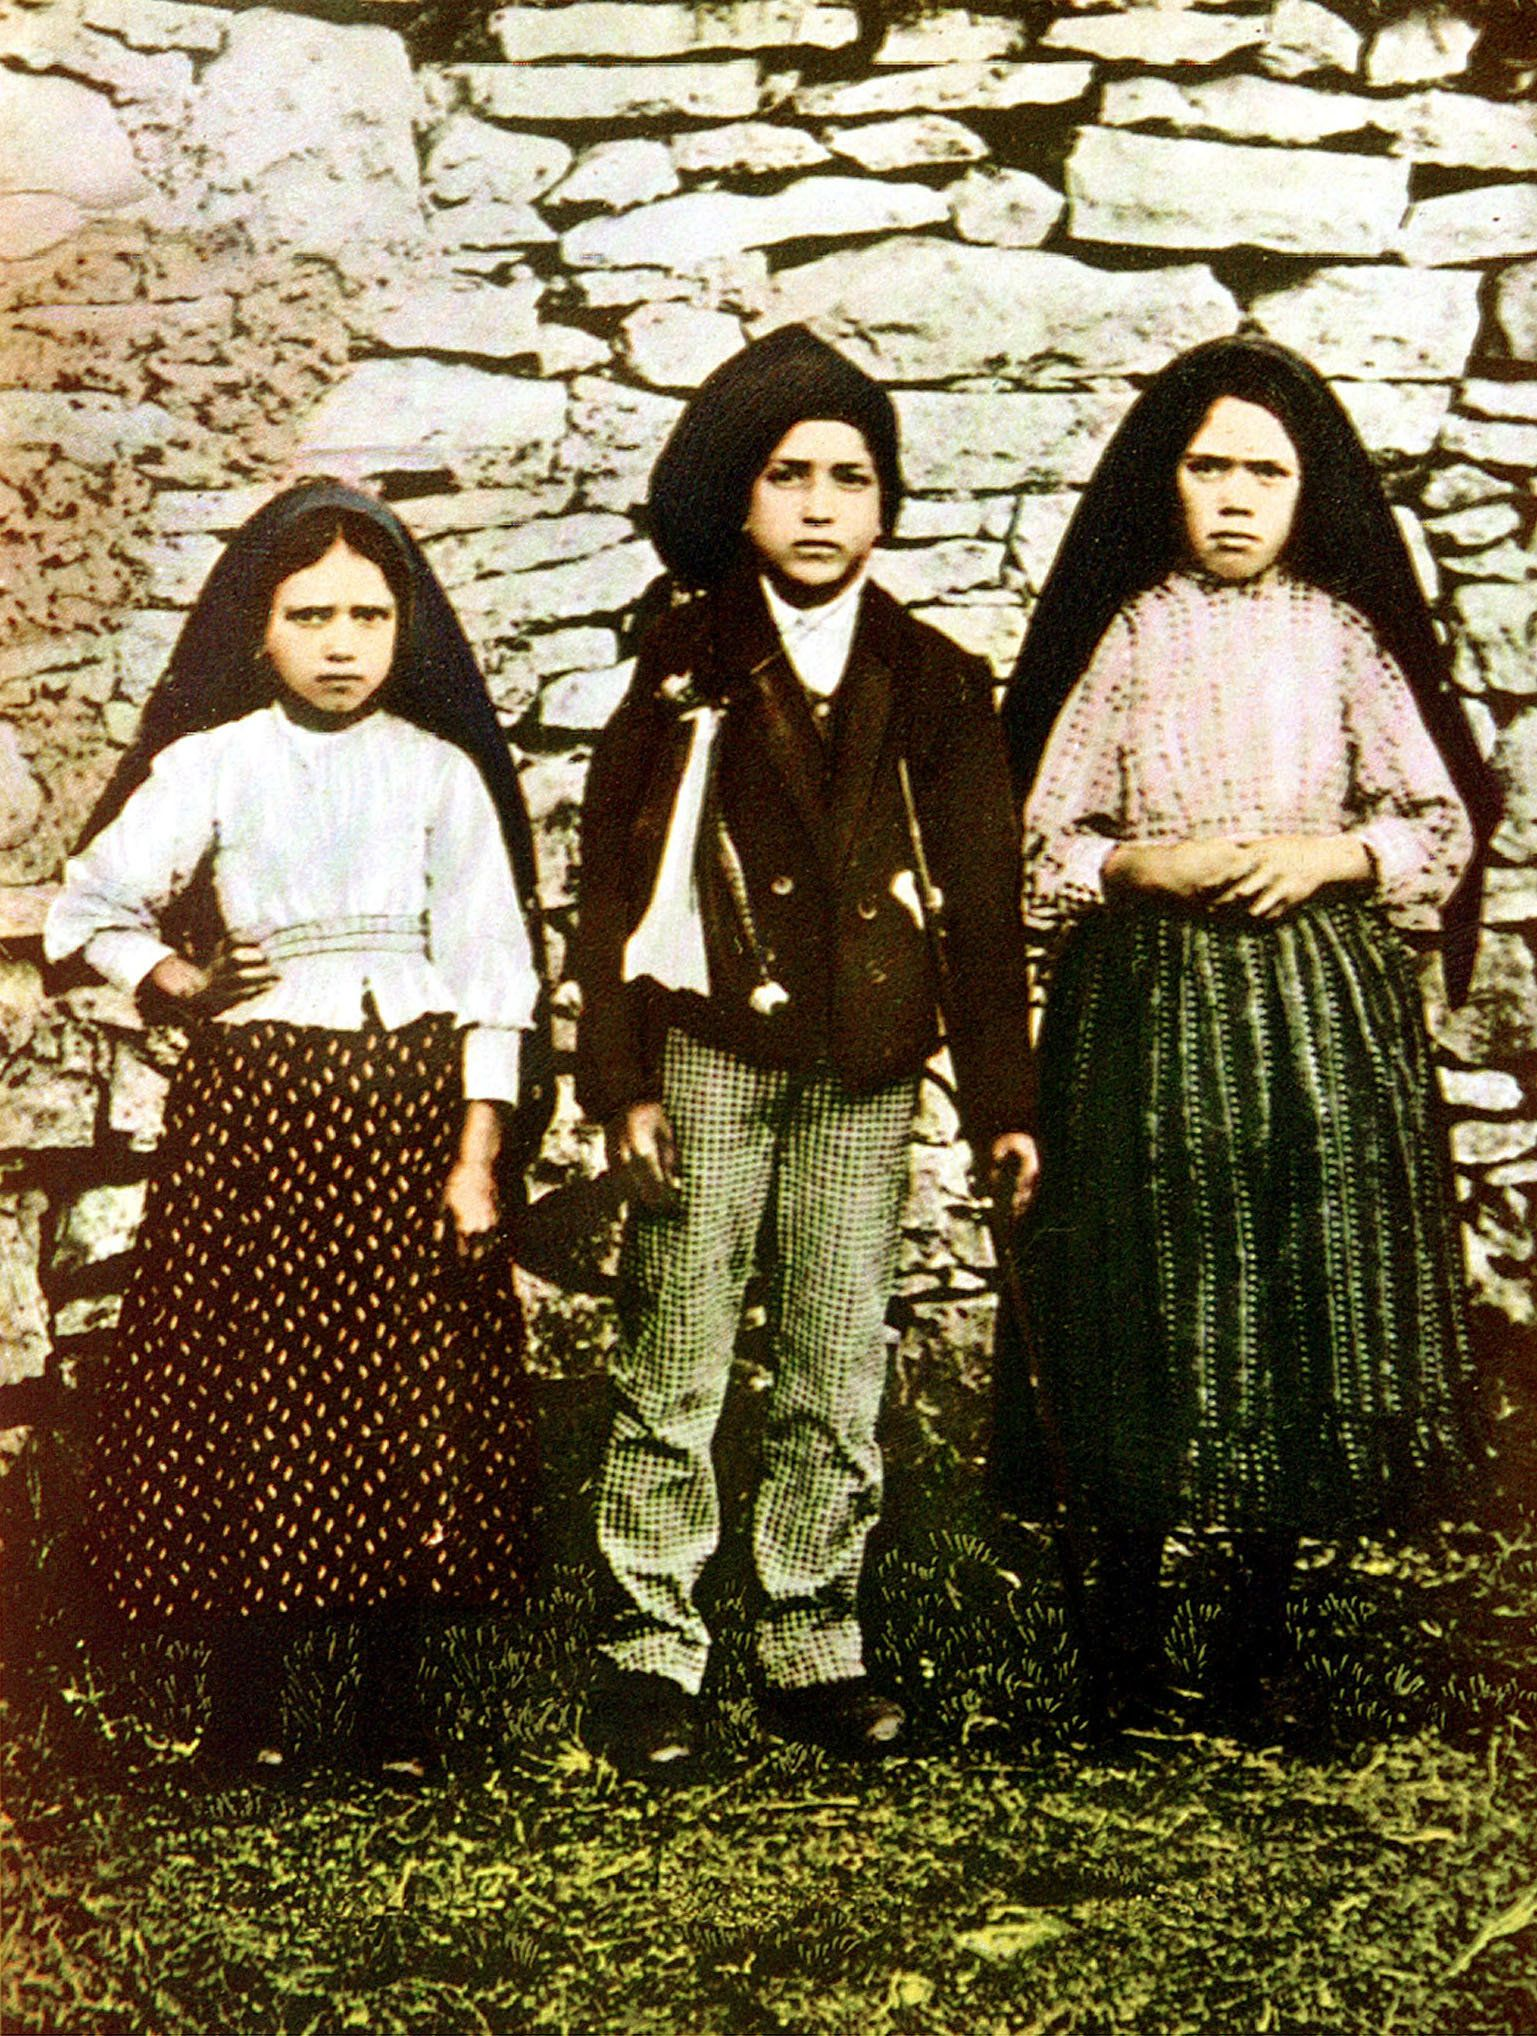 Three young shepherds, Jacinta Marto (L), Francisco Marto (C) and Lucia dos Santos who during the Spring of 1916 saw the Holy